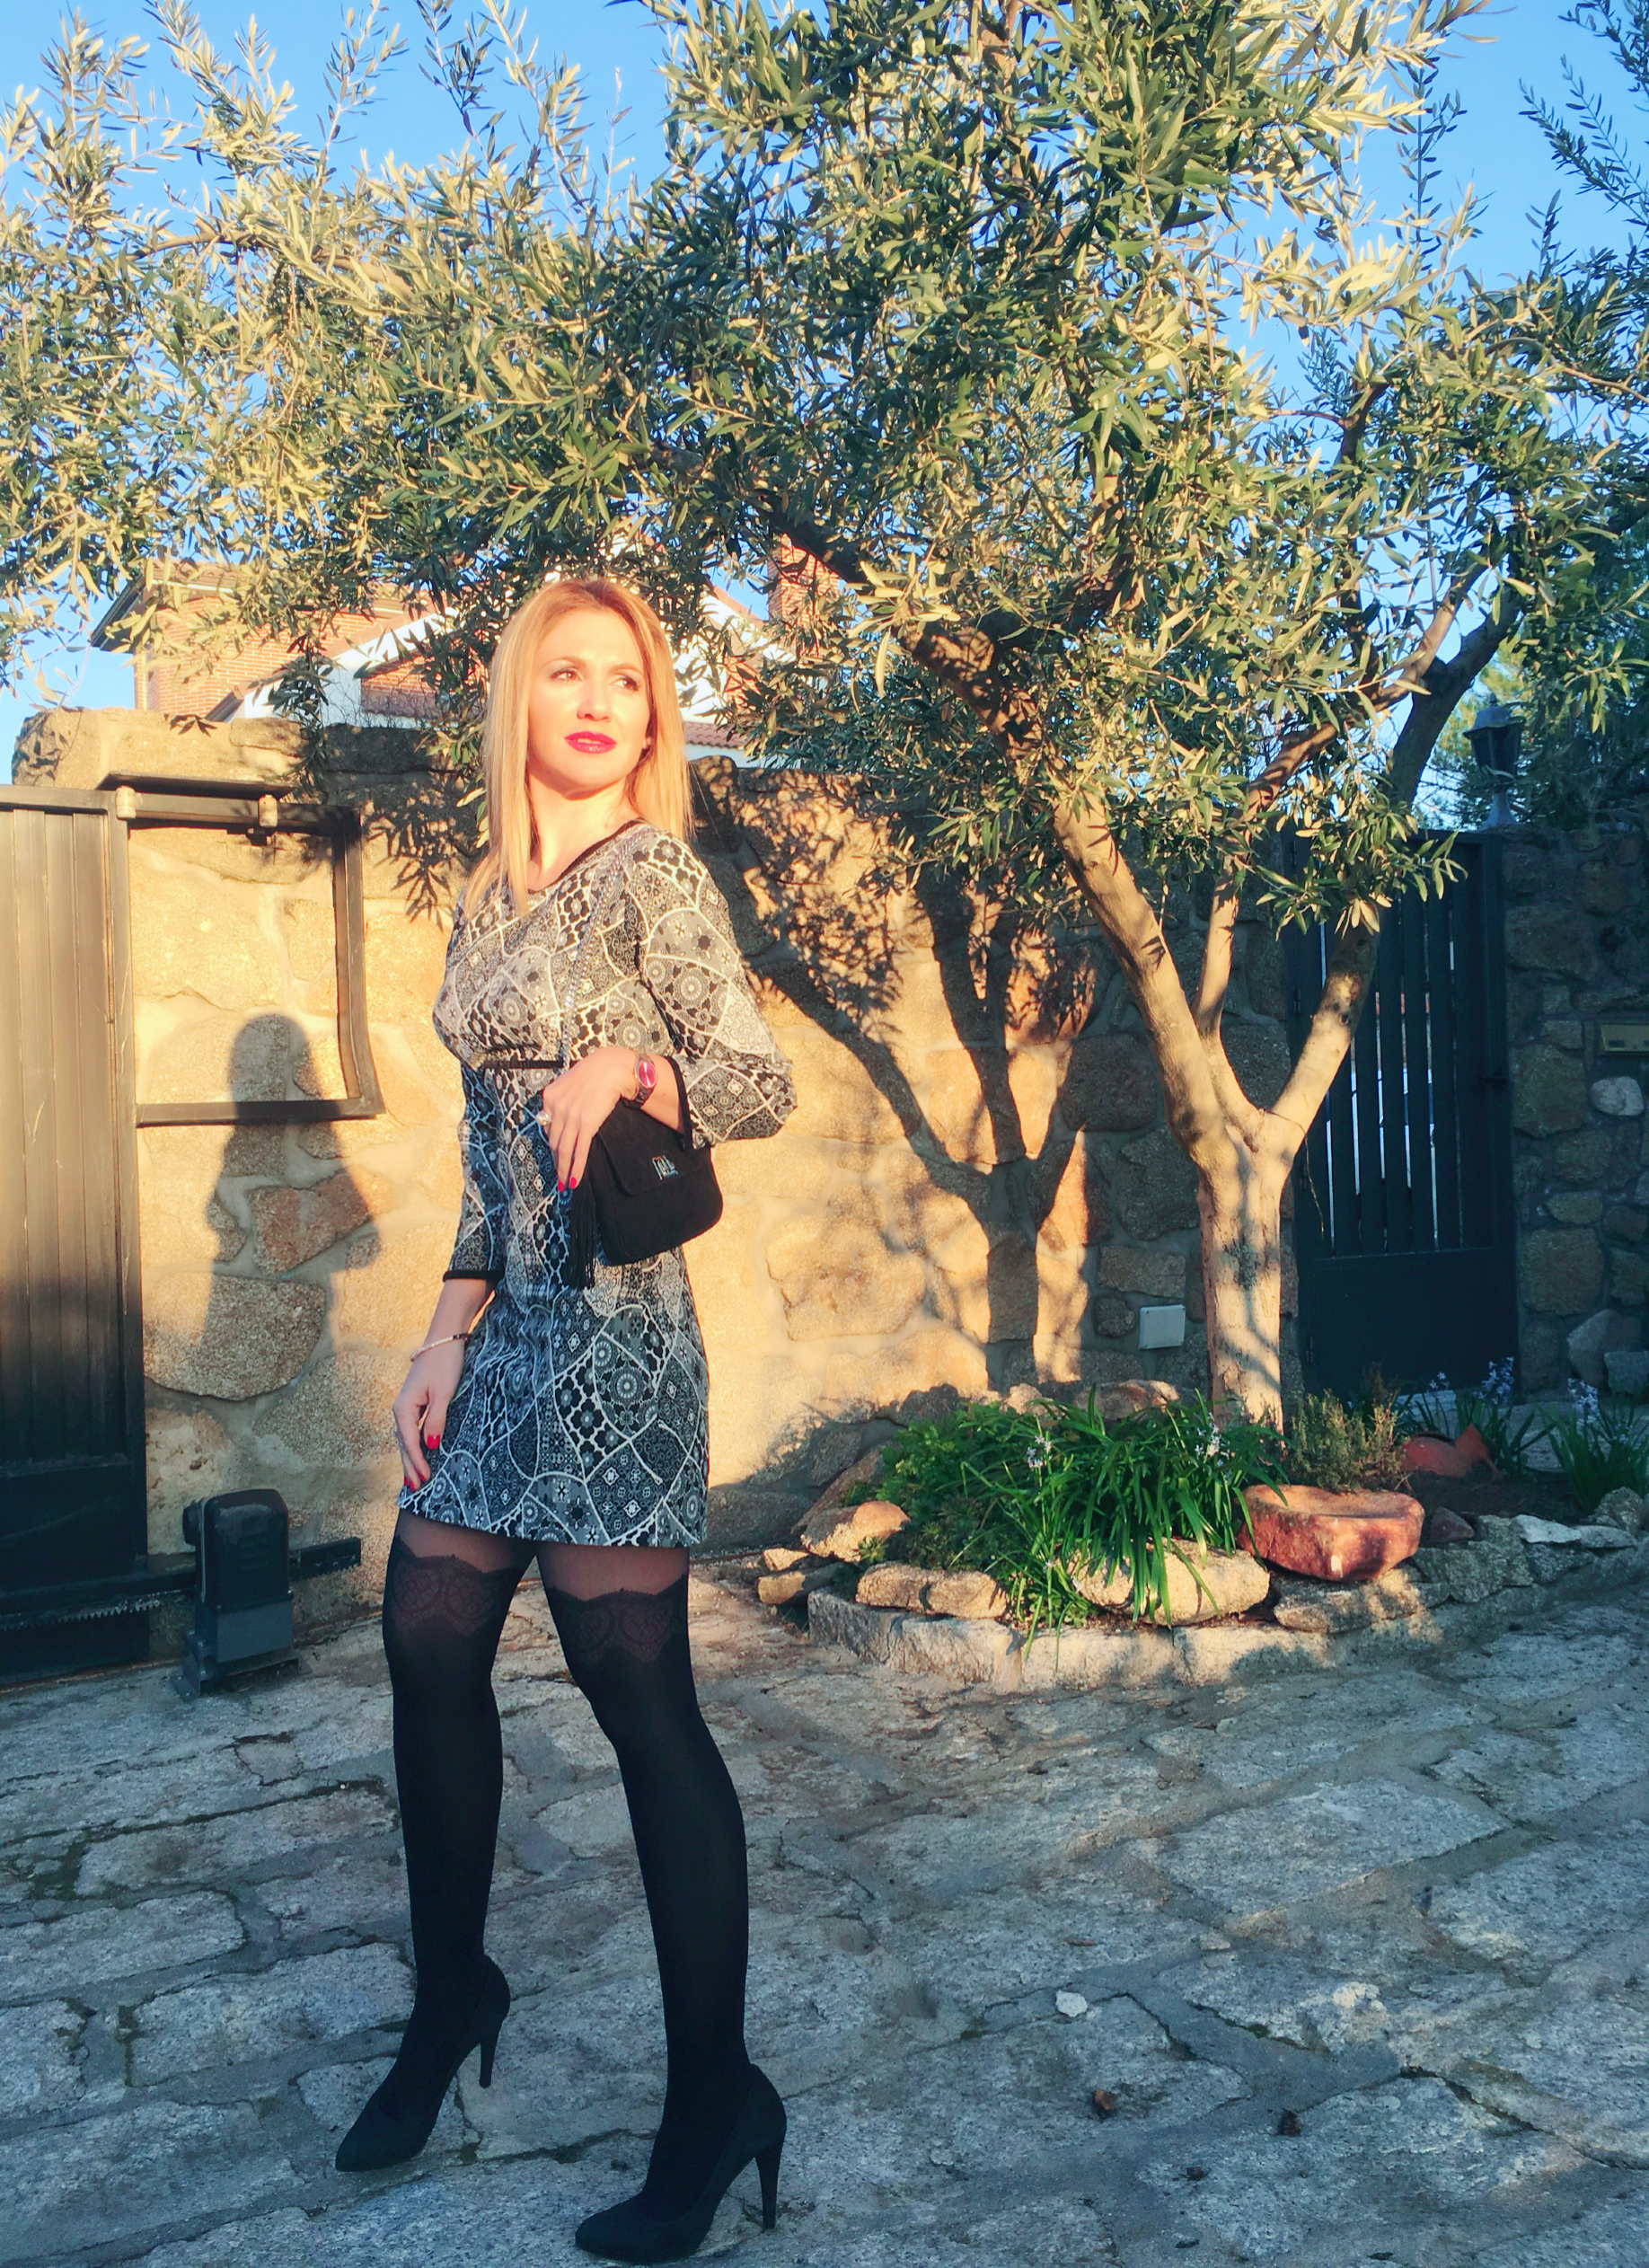 OUTFIT DETAILS: Dress: ZARA (old); Handbag: Gift from a friend; Swatch: MAREA; Stockings: CALCEDONIA; Shoes: MARIAN;